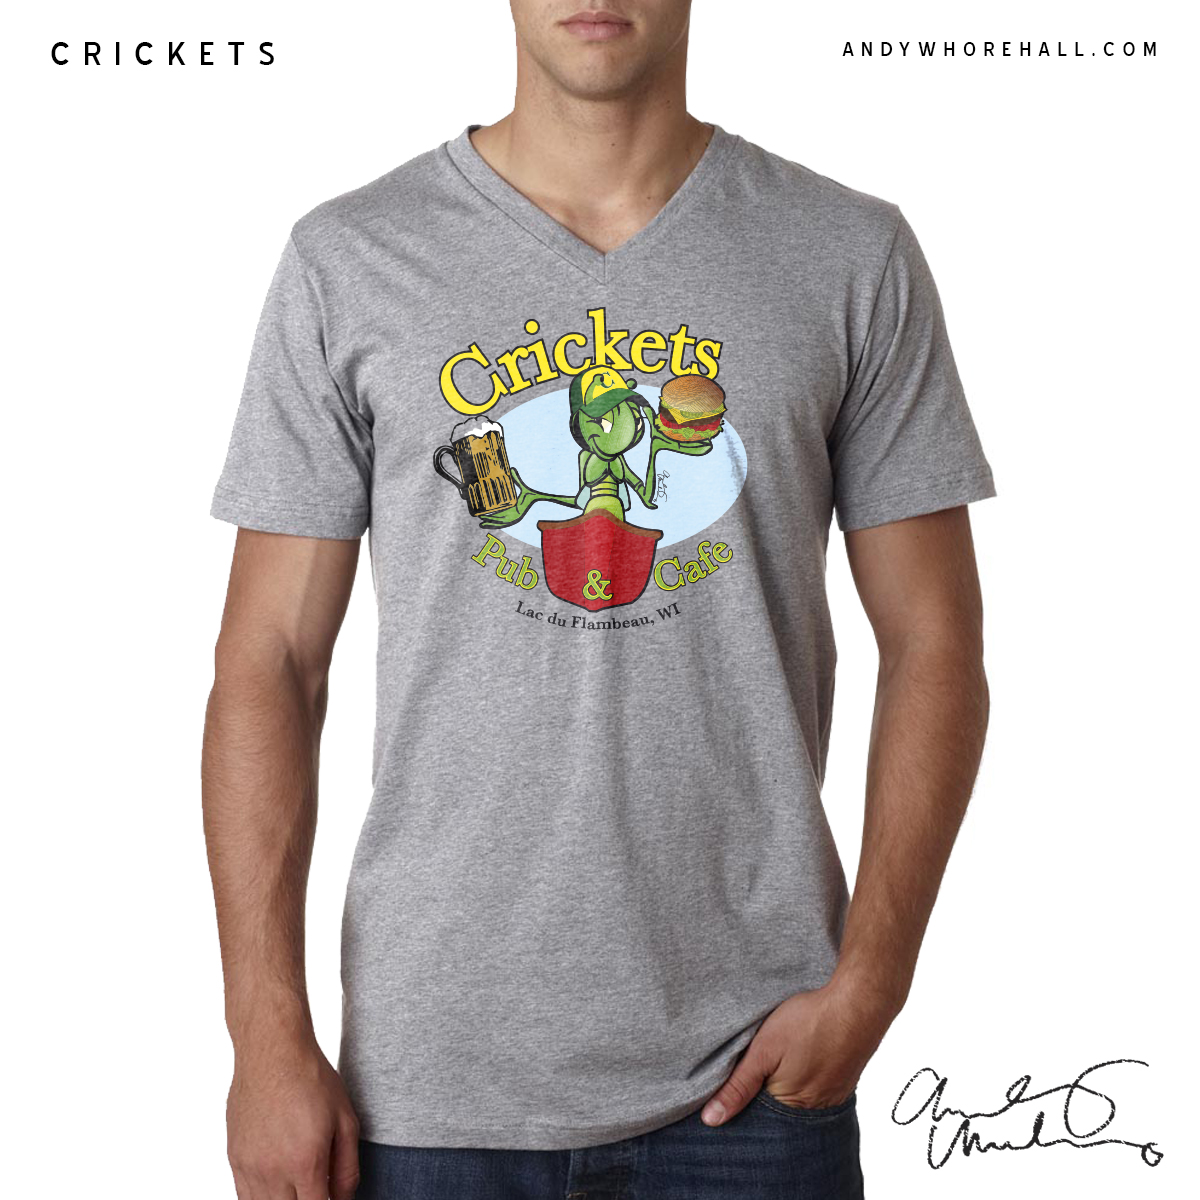 Crickets_Pub-T